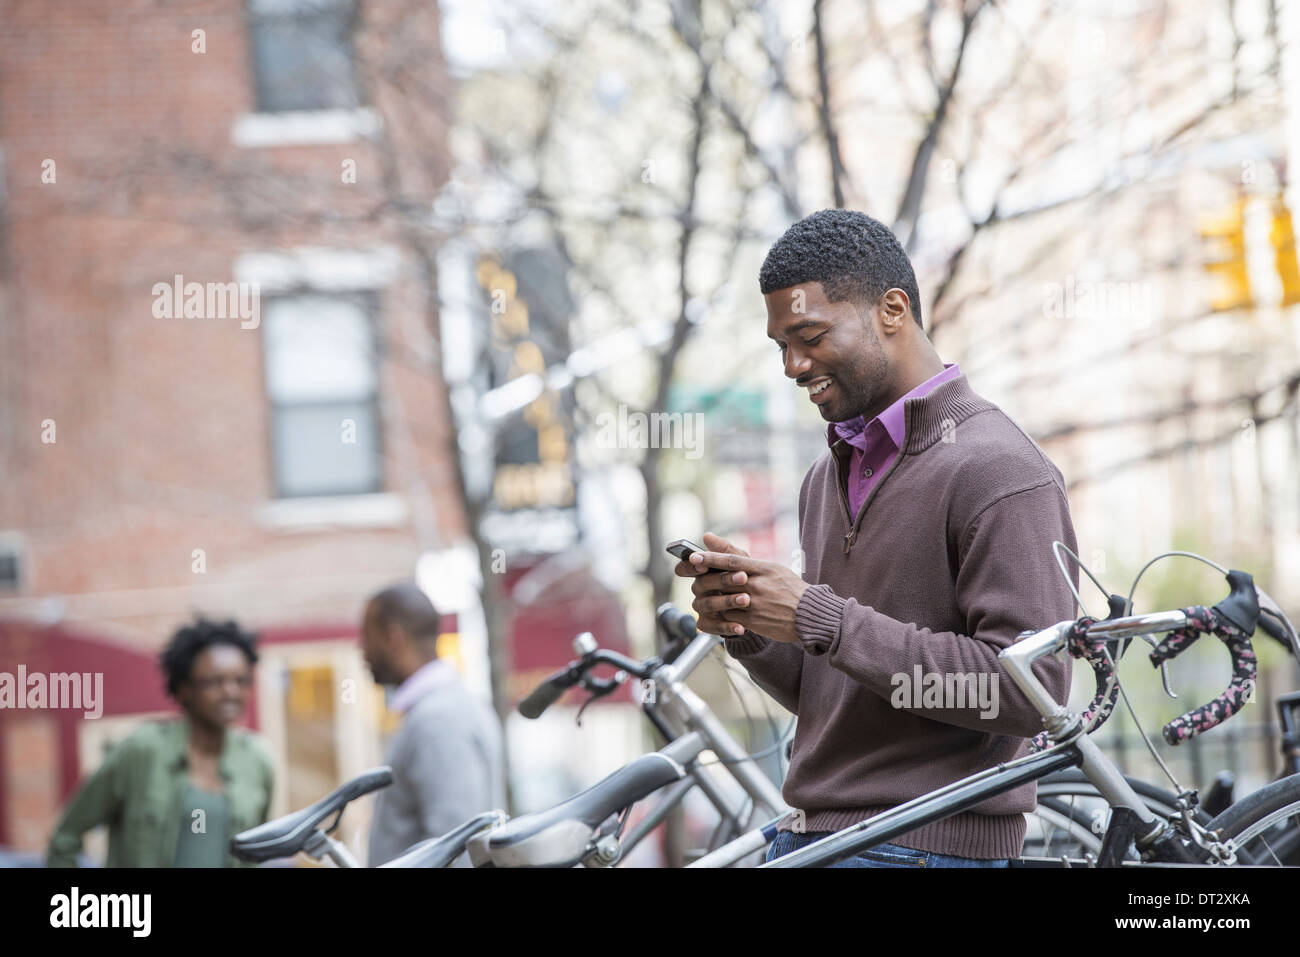 A young man checking his phone and texting Cycle rack and stored bicycles - Stock Image